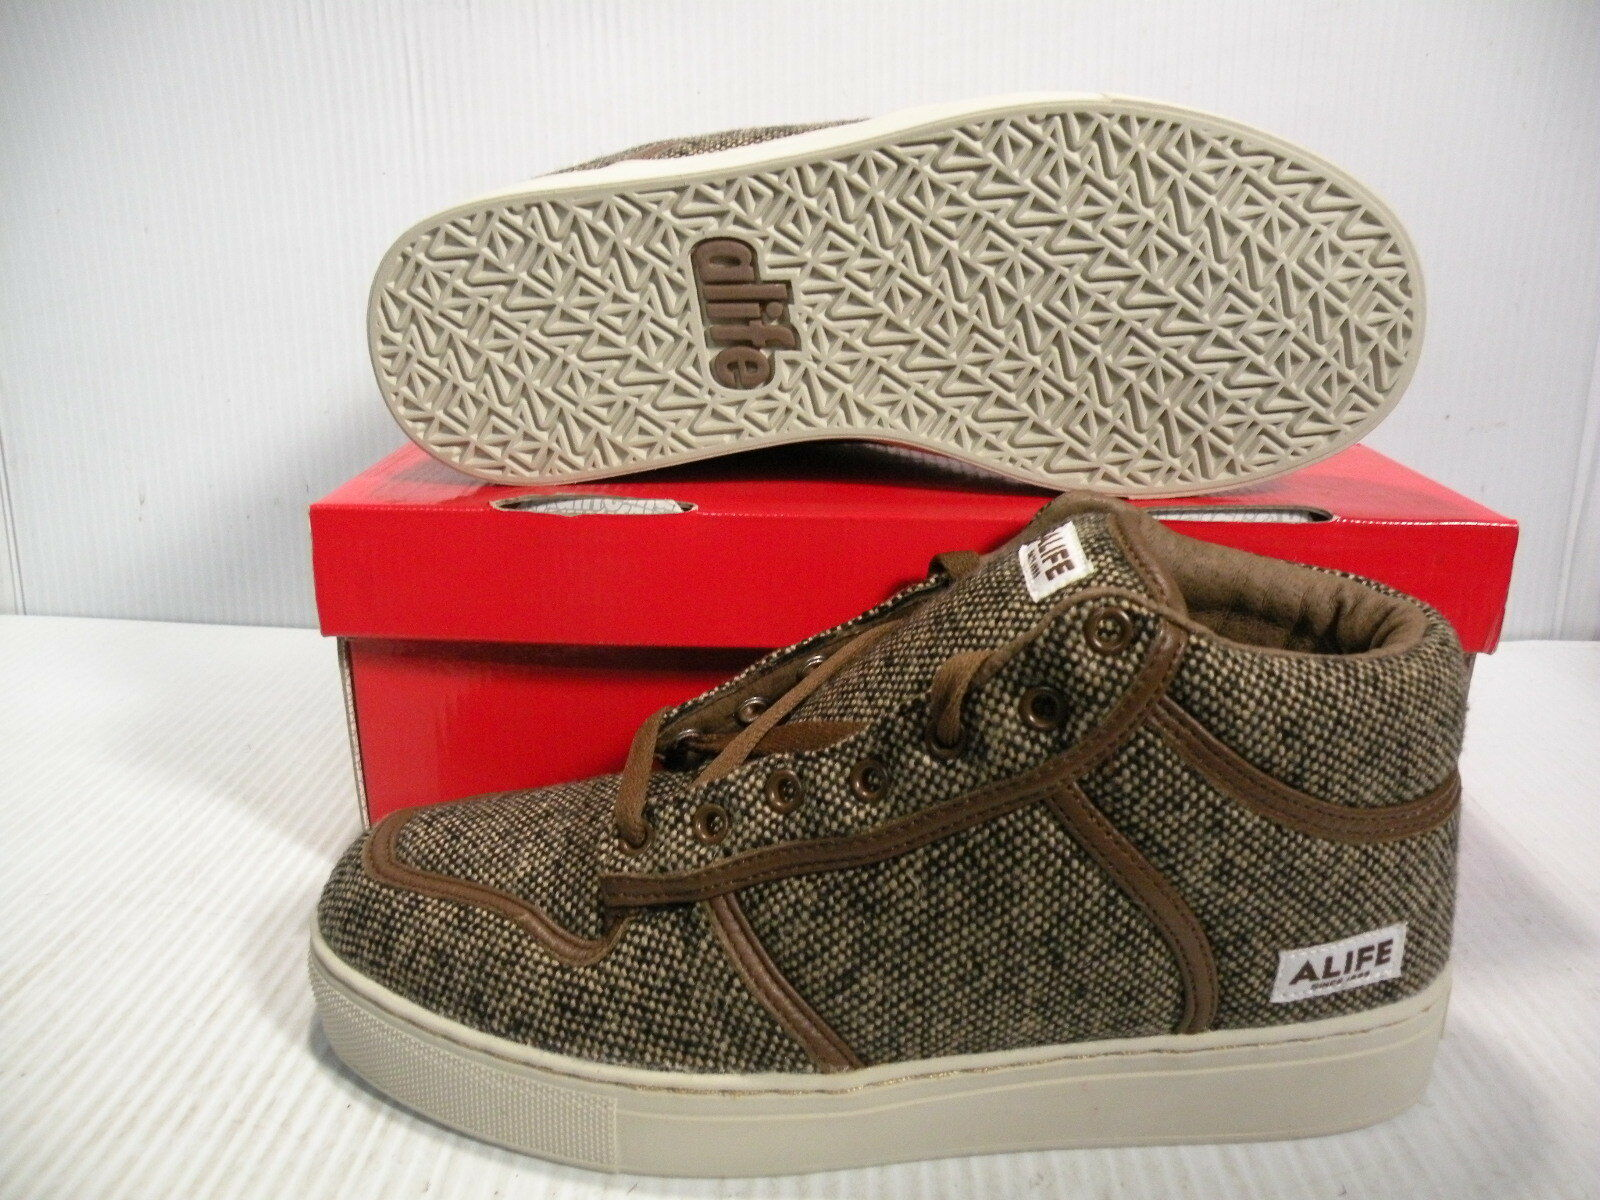 ALIFE EVERYBODY MID TWEED SNEAKERS MEN SHOES BROWN F92EVMT1 SIZE 6.5 NEW